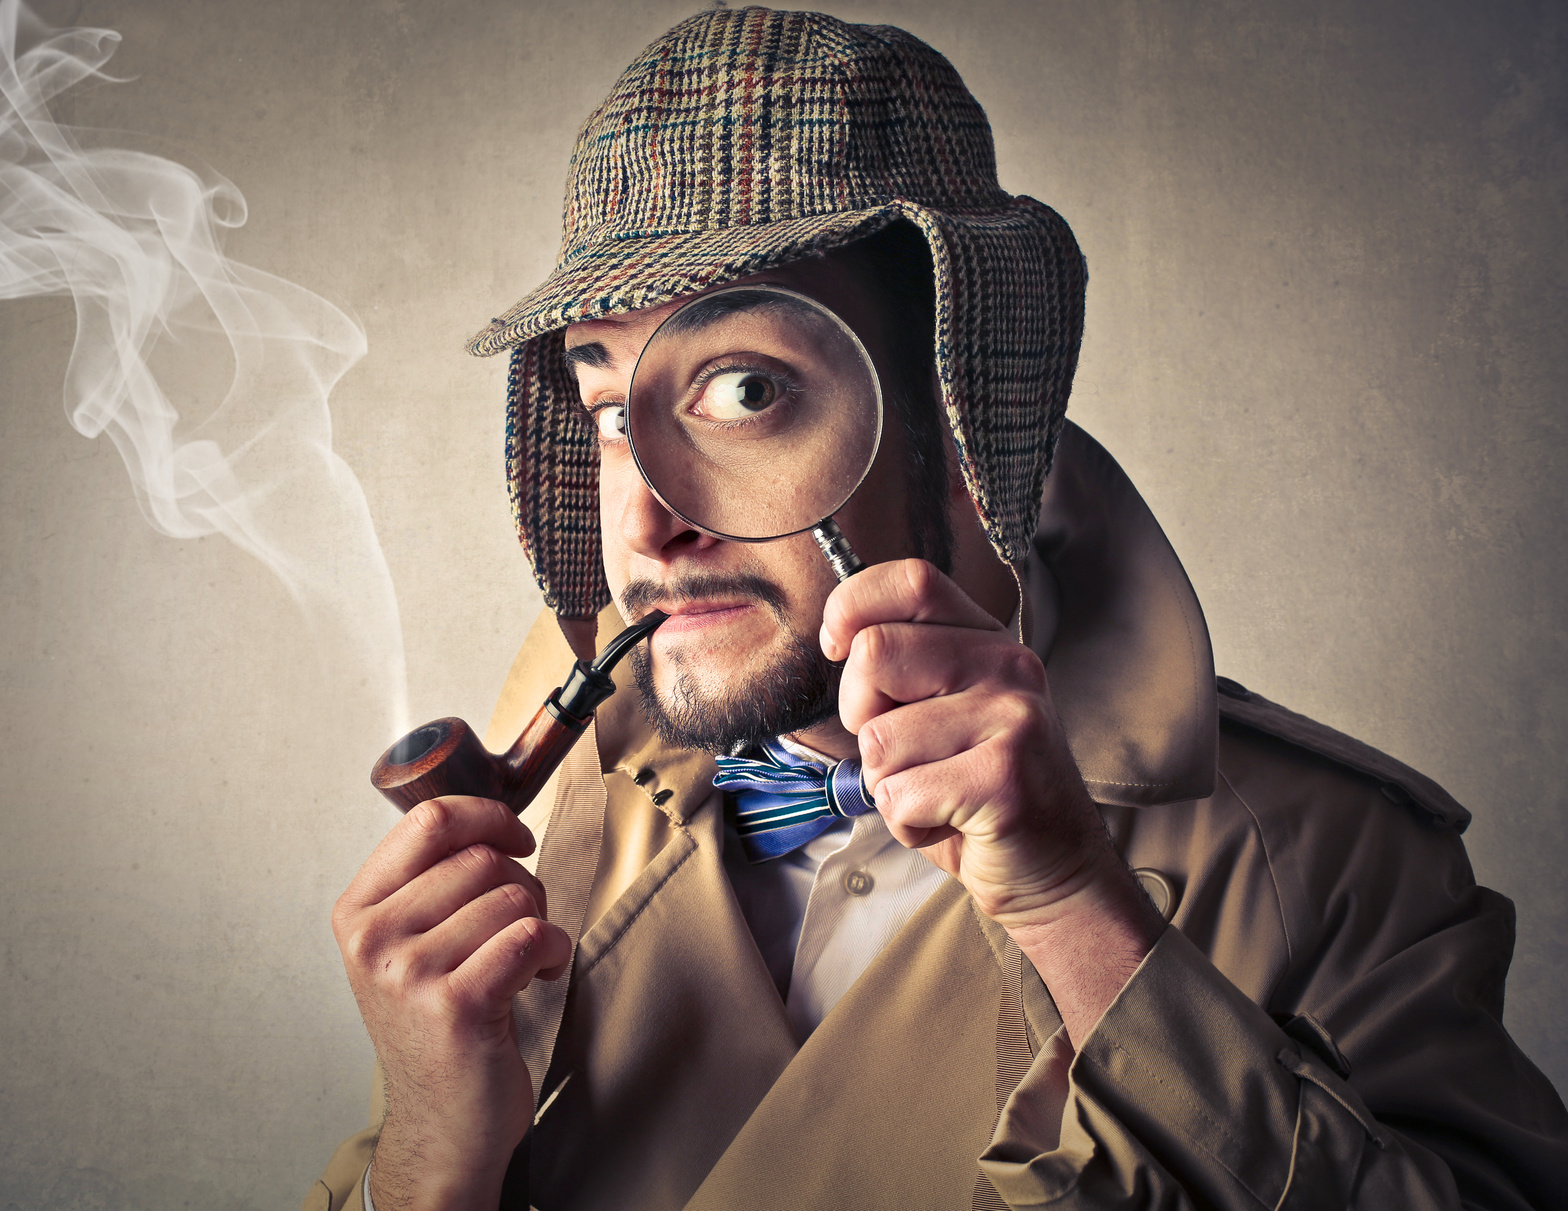 detective_pipe_magnifying_glass